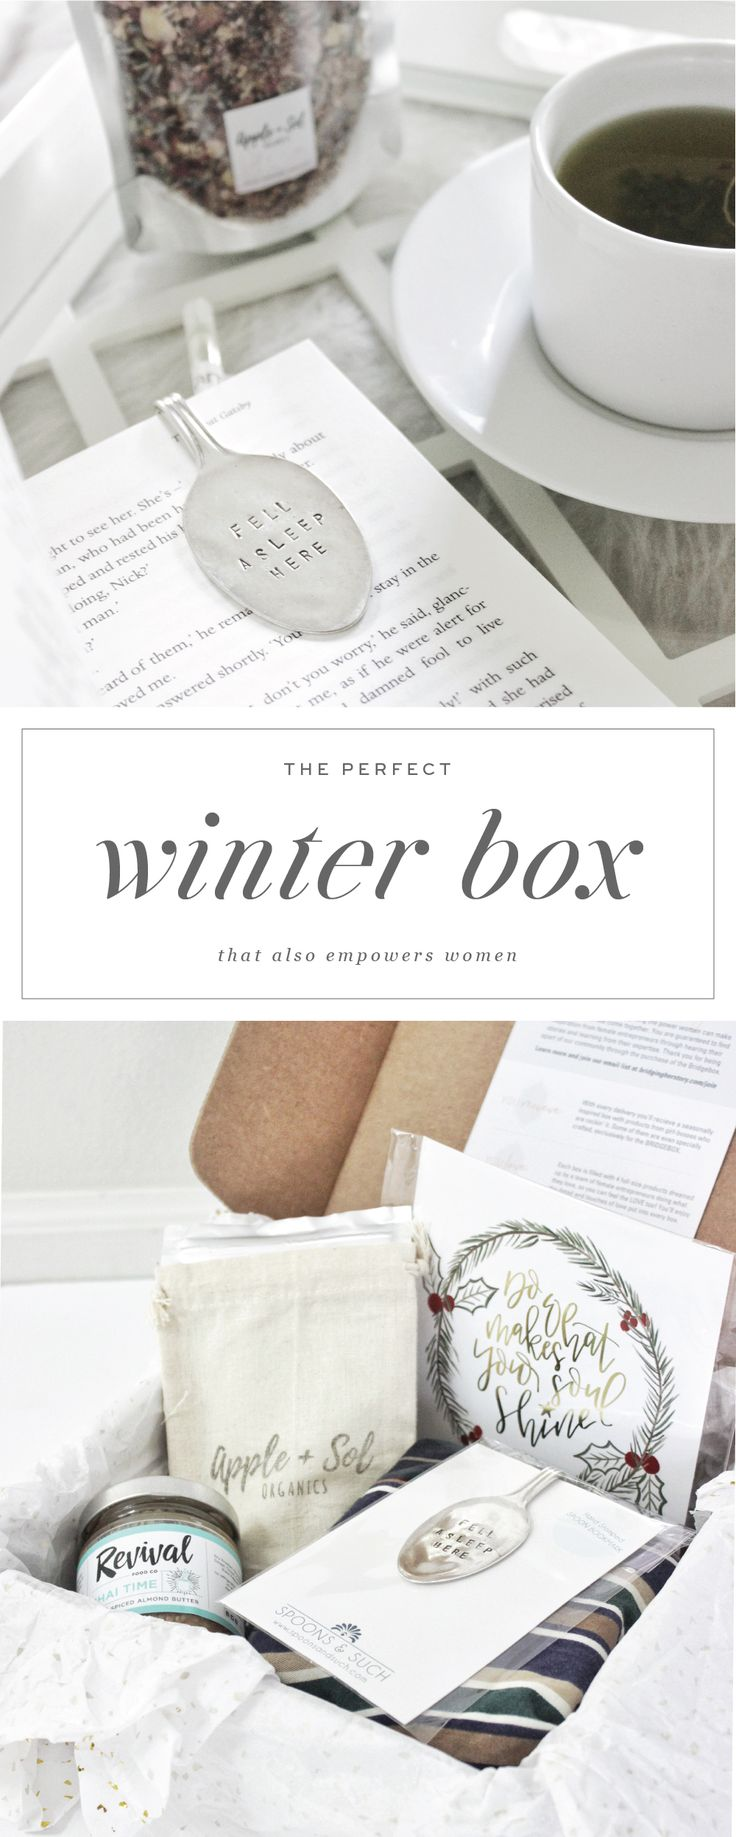 The perfect winter box that empowers women - Saffron Avenue : Subscription Box, Gift Box, Lady Boss, Hostess Gift, Boss Babe, Gifting,